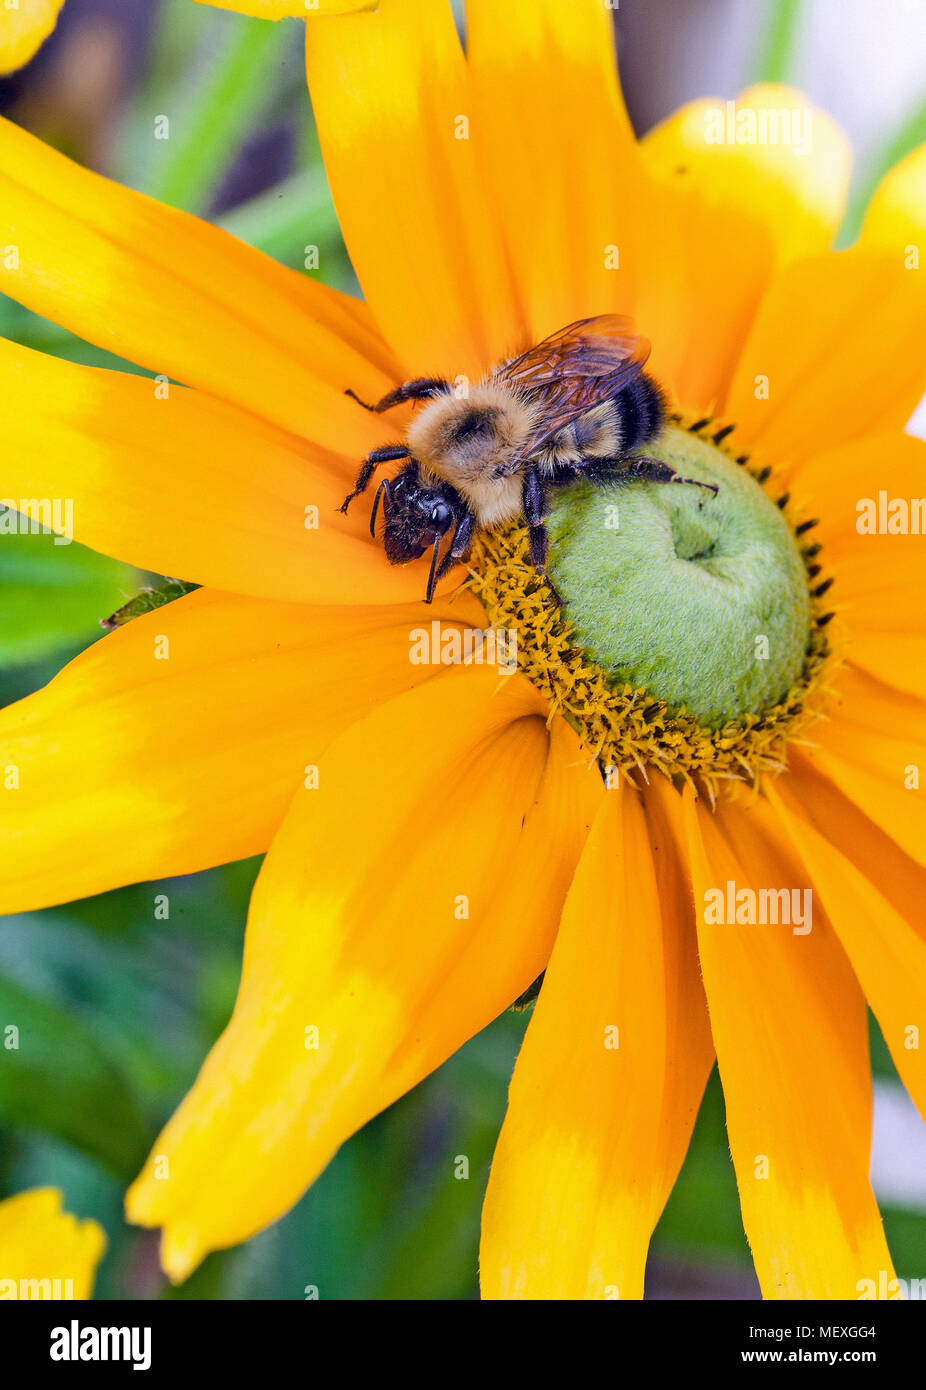 Close-up of a Honey Bee, genus Apis, collecting pollen from a yellow sunflower with a green center. Stock Photo